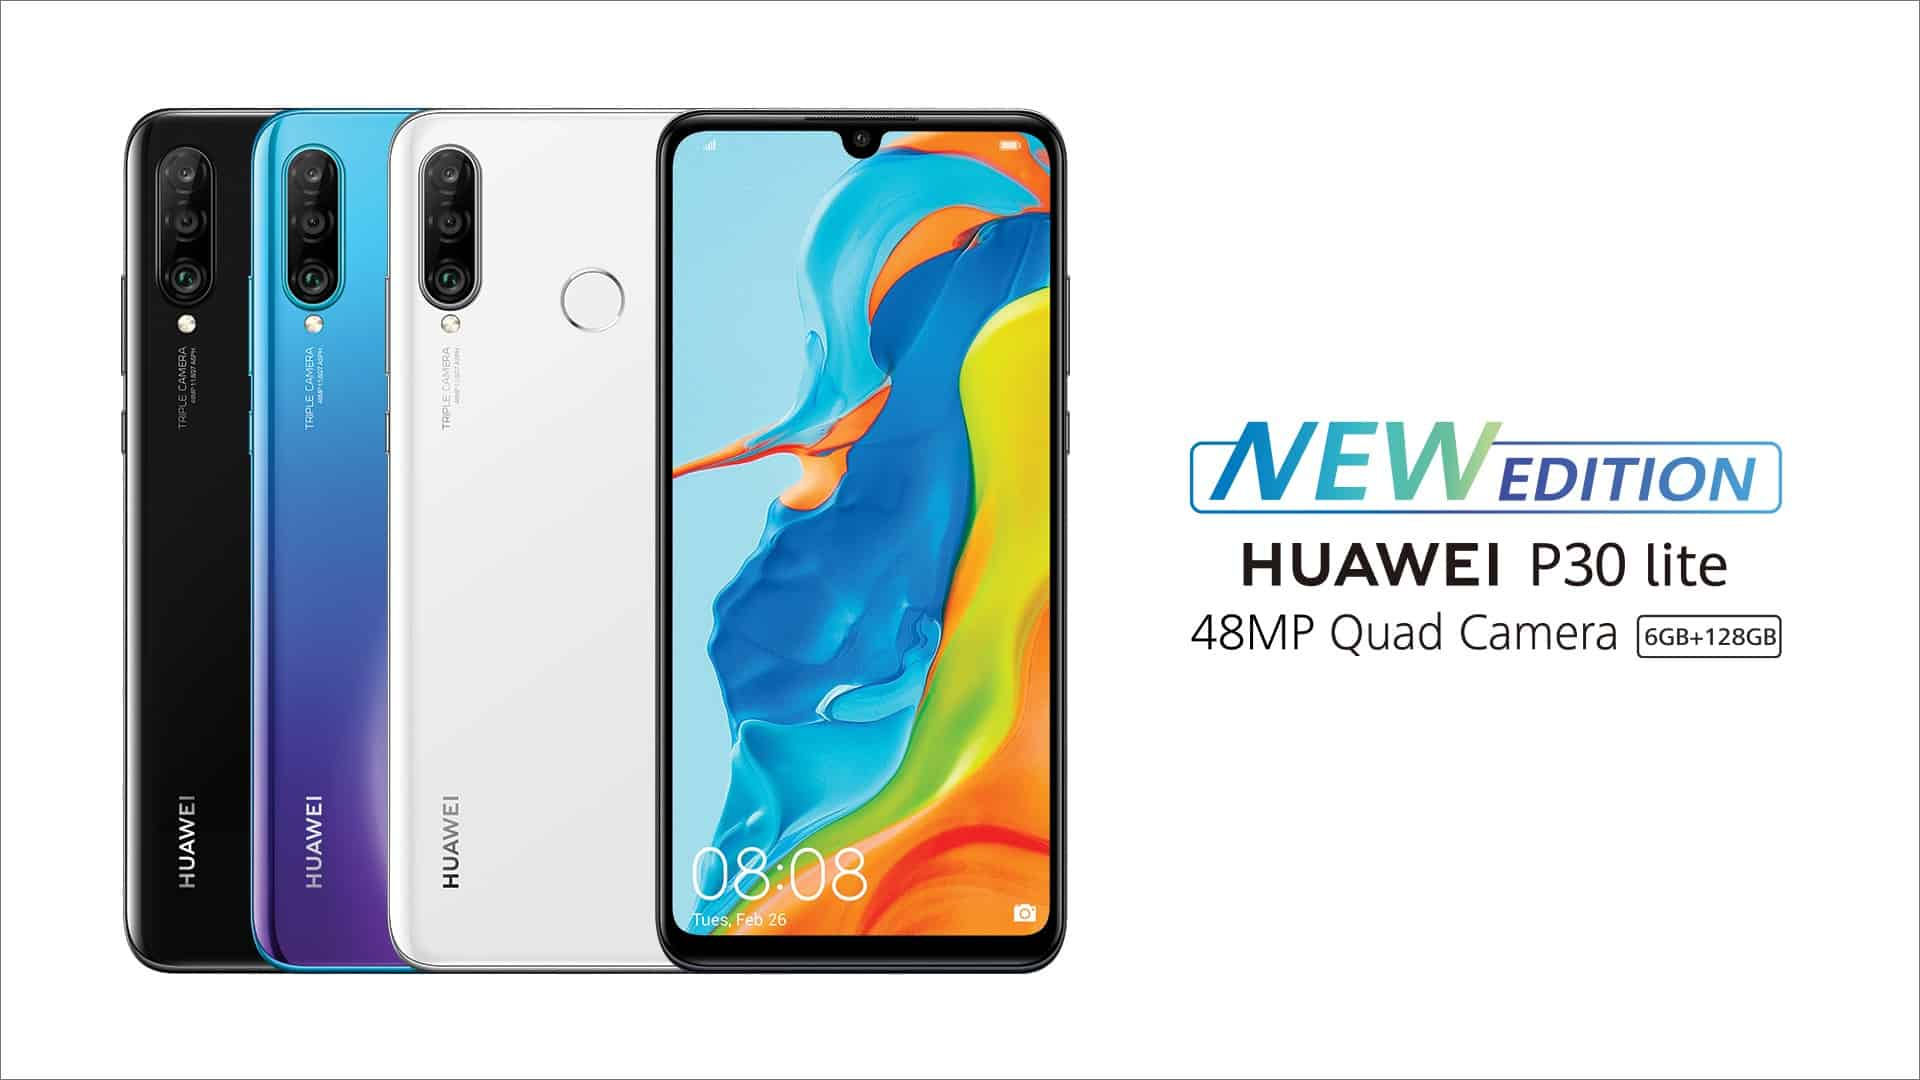 HUAWEI P30 lite 48MP edition's features